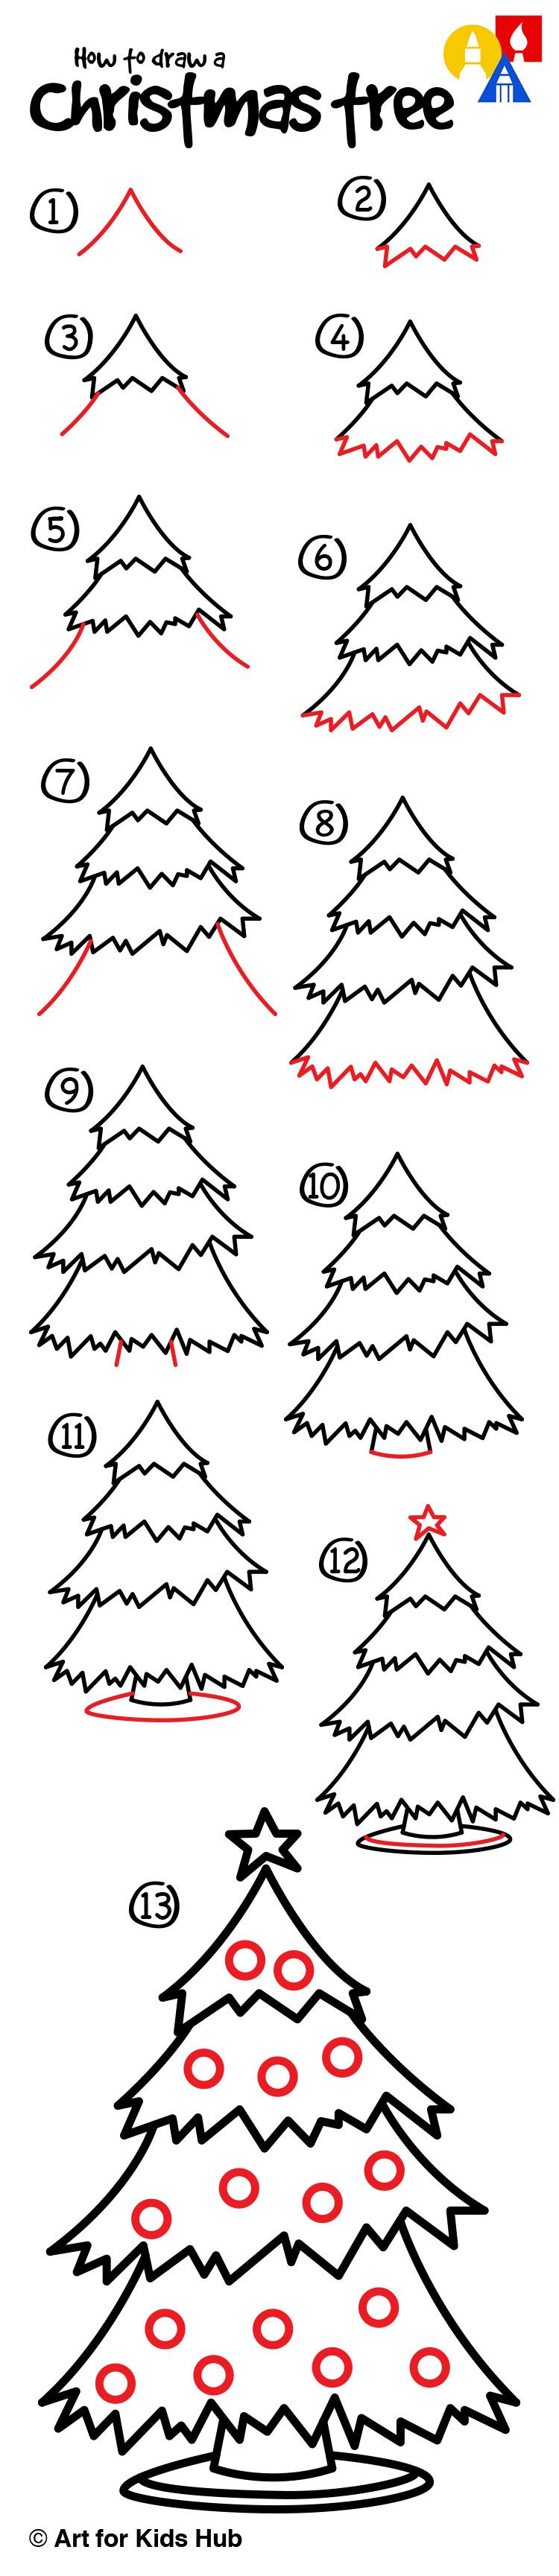 How To Draw A Christmas Tree Art For Kids Hub Christmas Tree